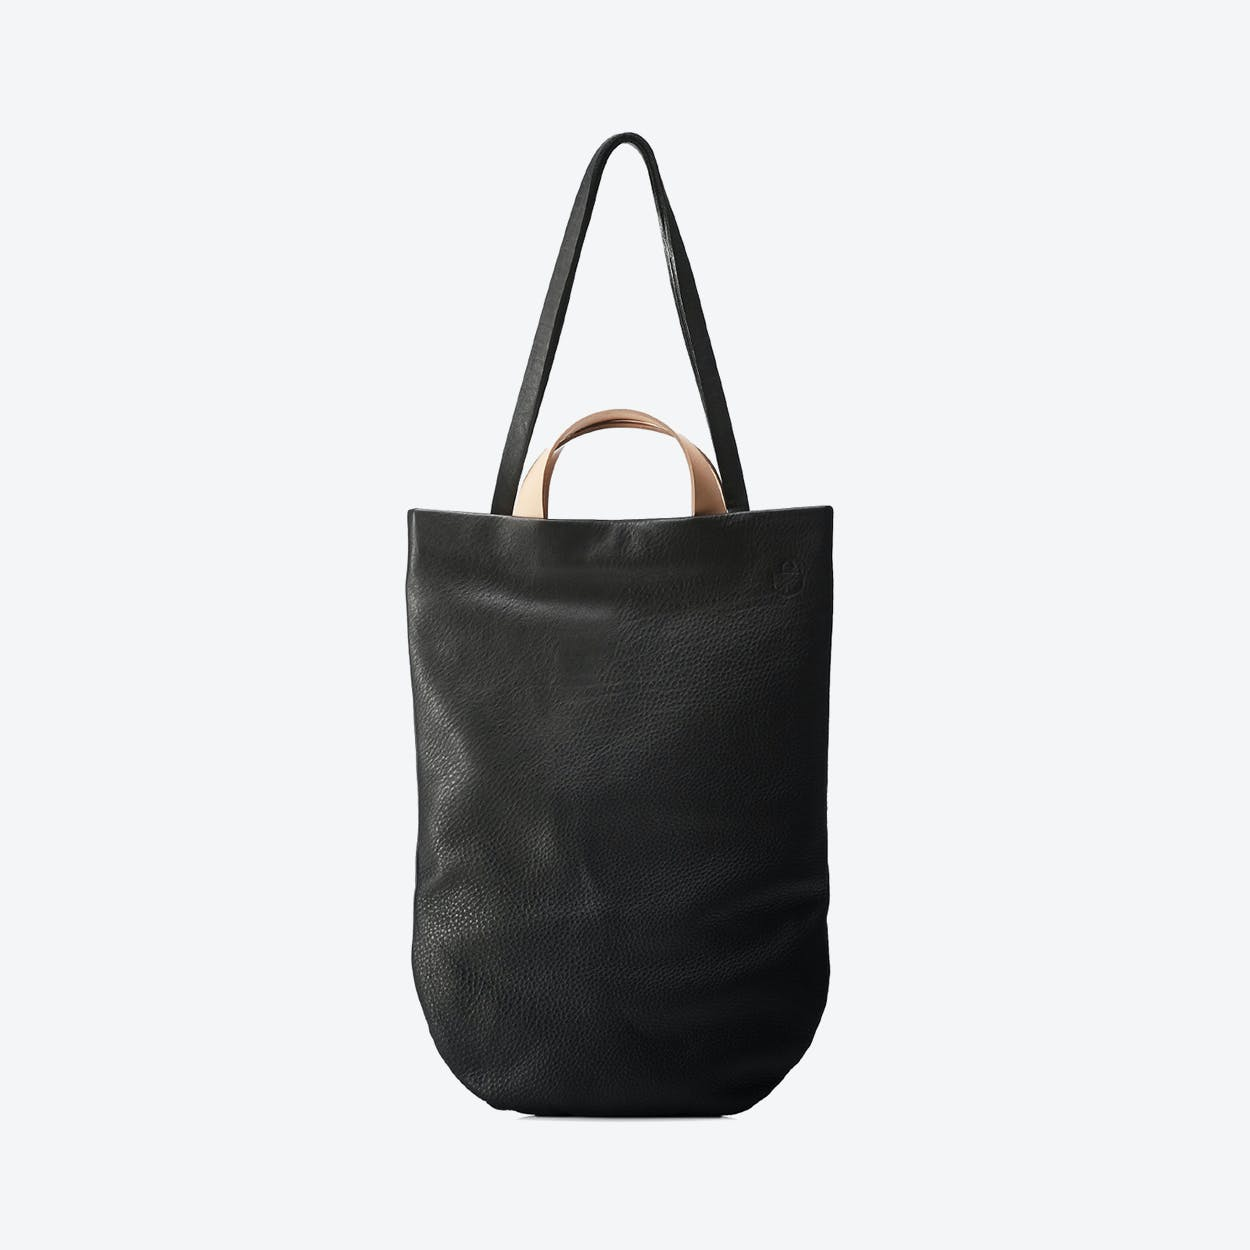 Nina Tote Bag (tanned leather details)